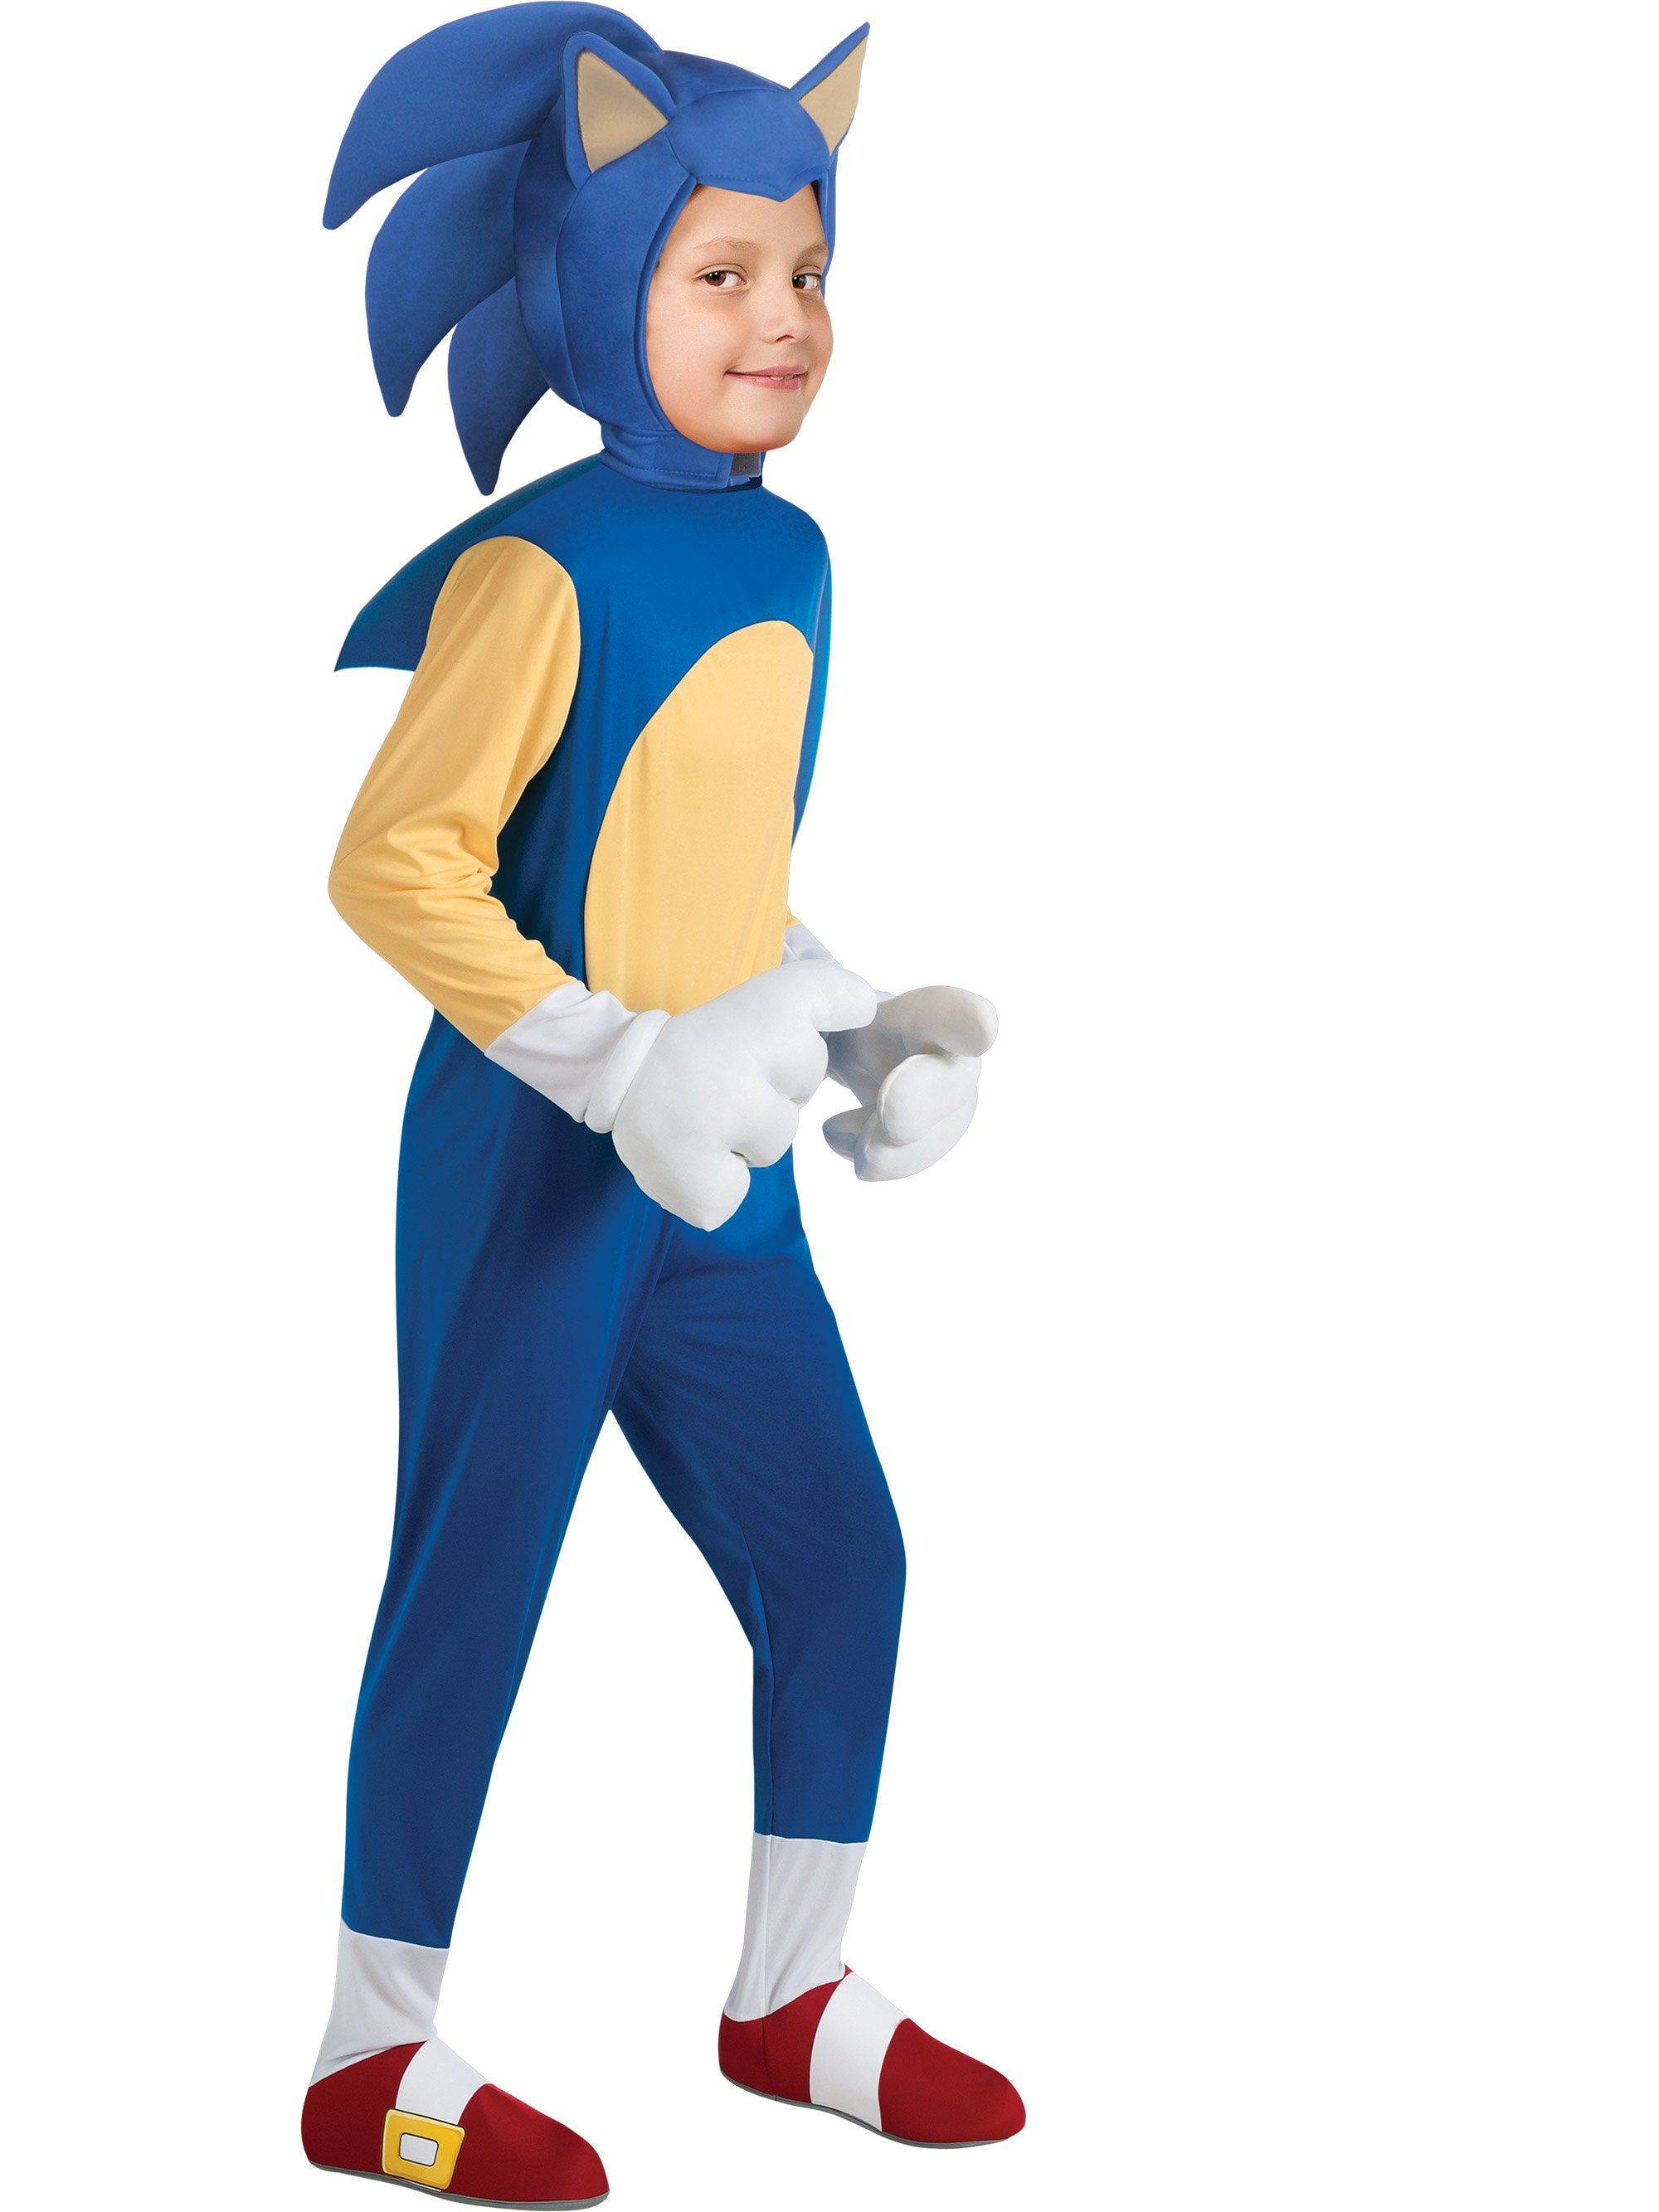 Deluxe Sonic Child Costume Boys Costumes For 2019 Wholesale Halloween Costumes